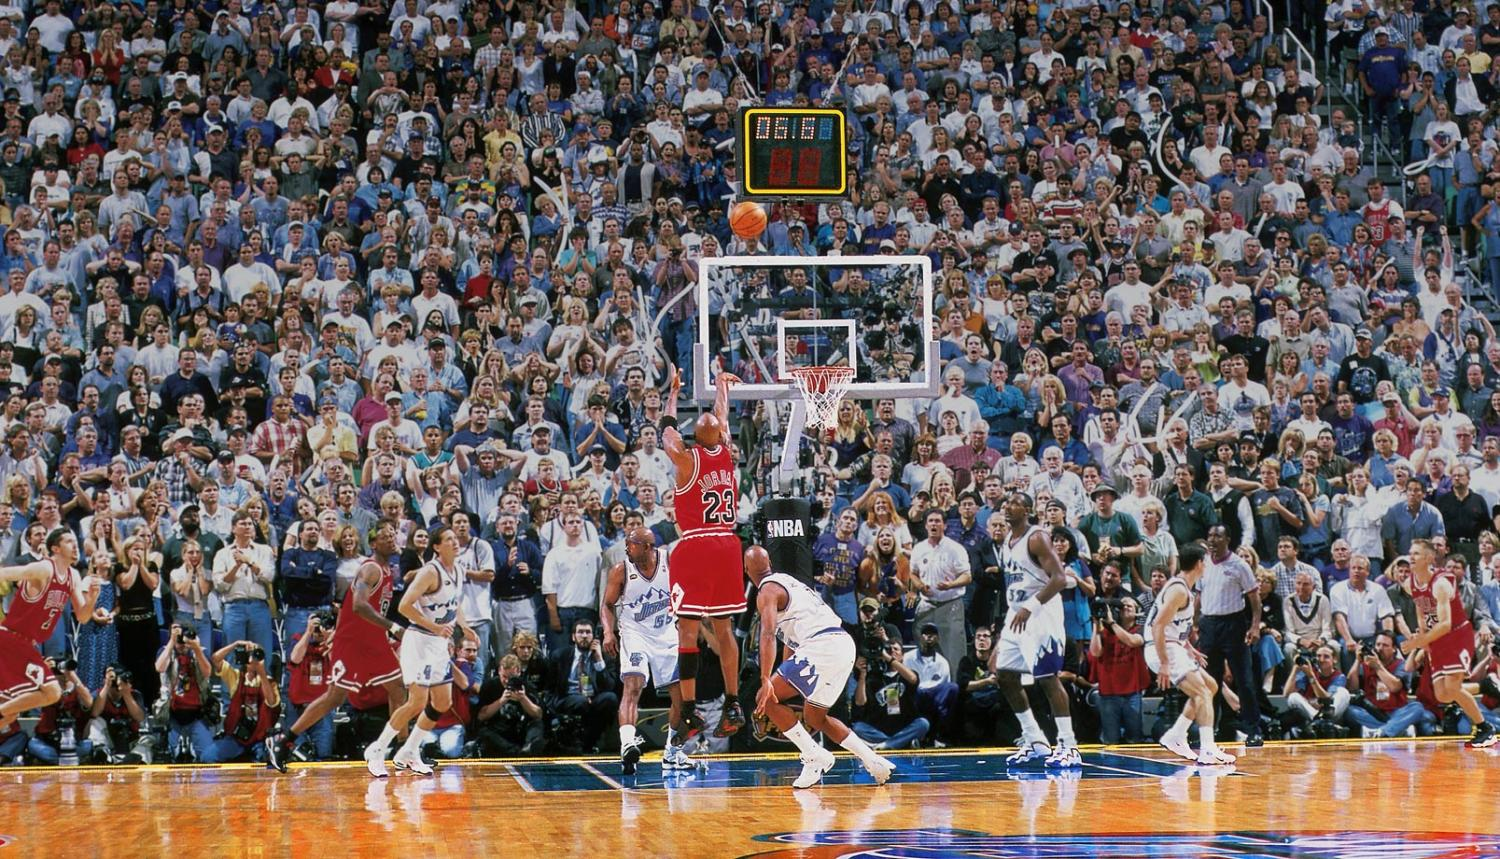 Michael Jordan The Shot 1998 - 15 Legendary Photos in NBA Finals History